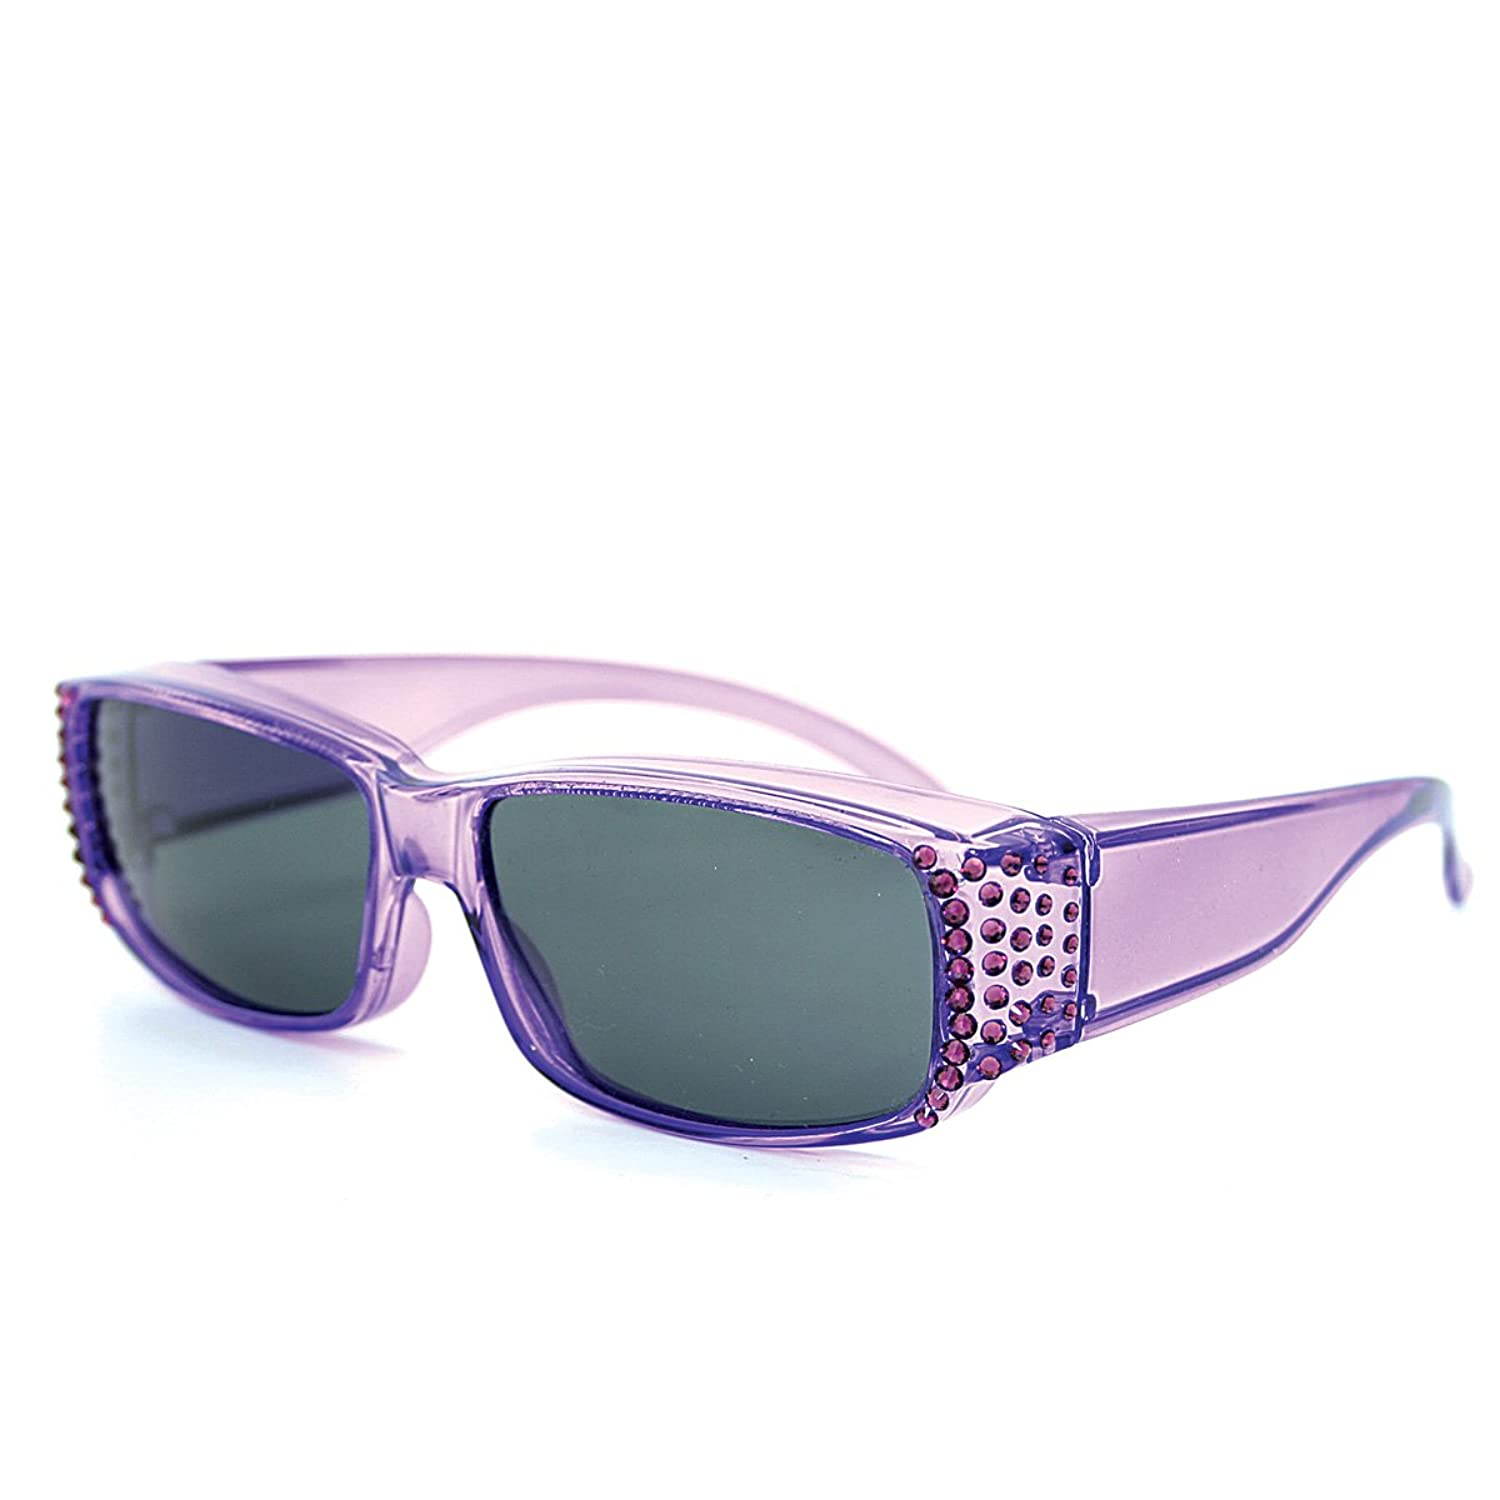 Fit Over Sunglasses Made With Swarovski Elements